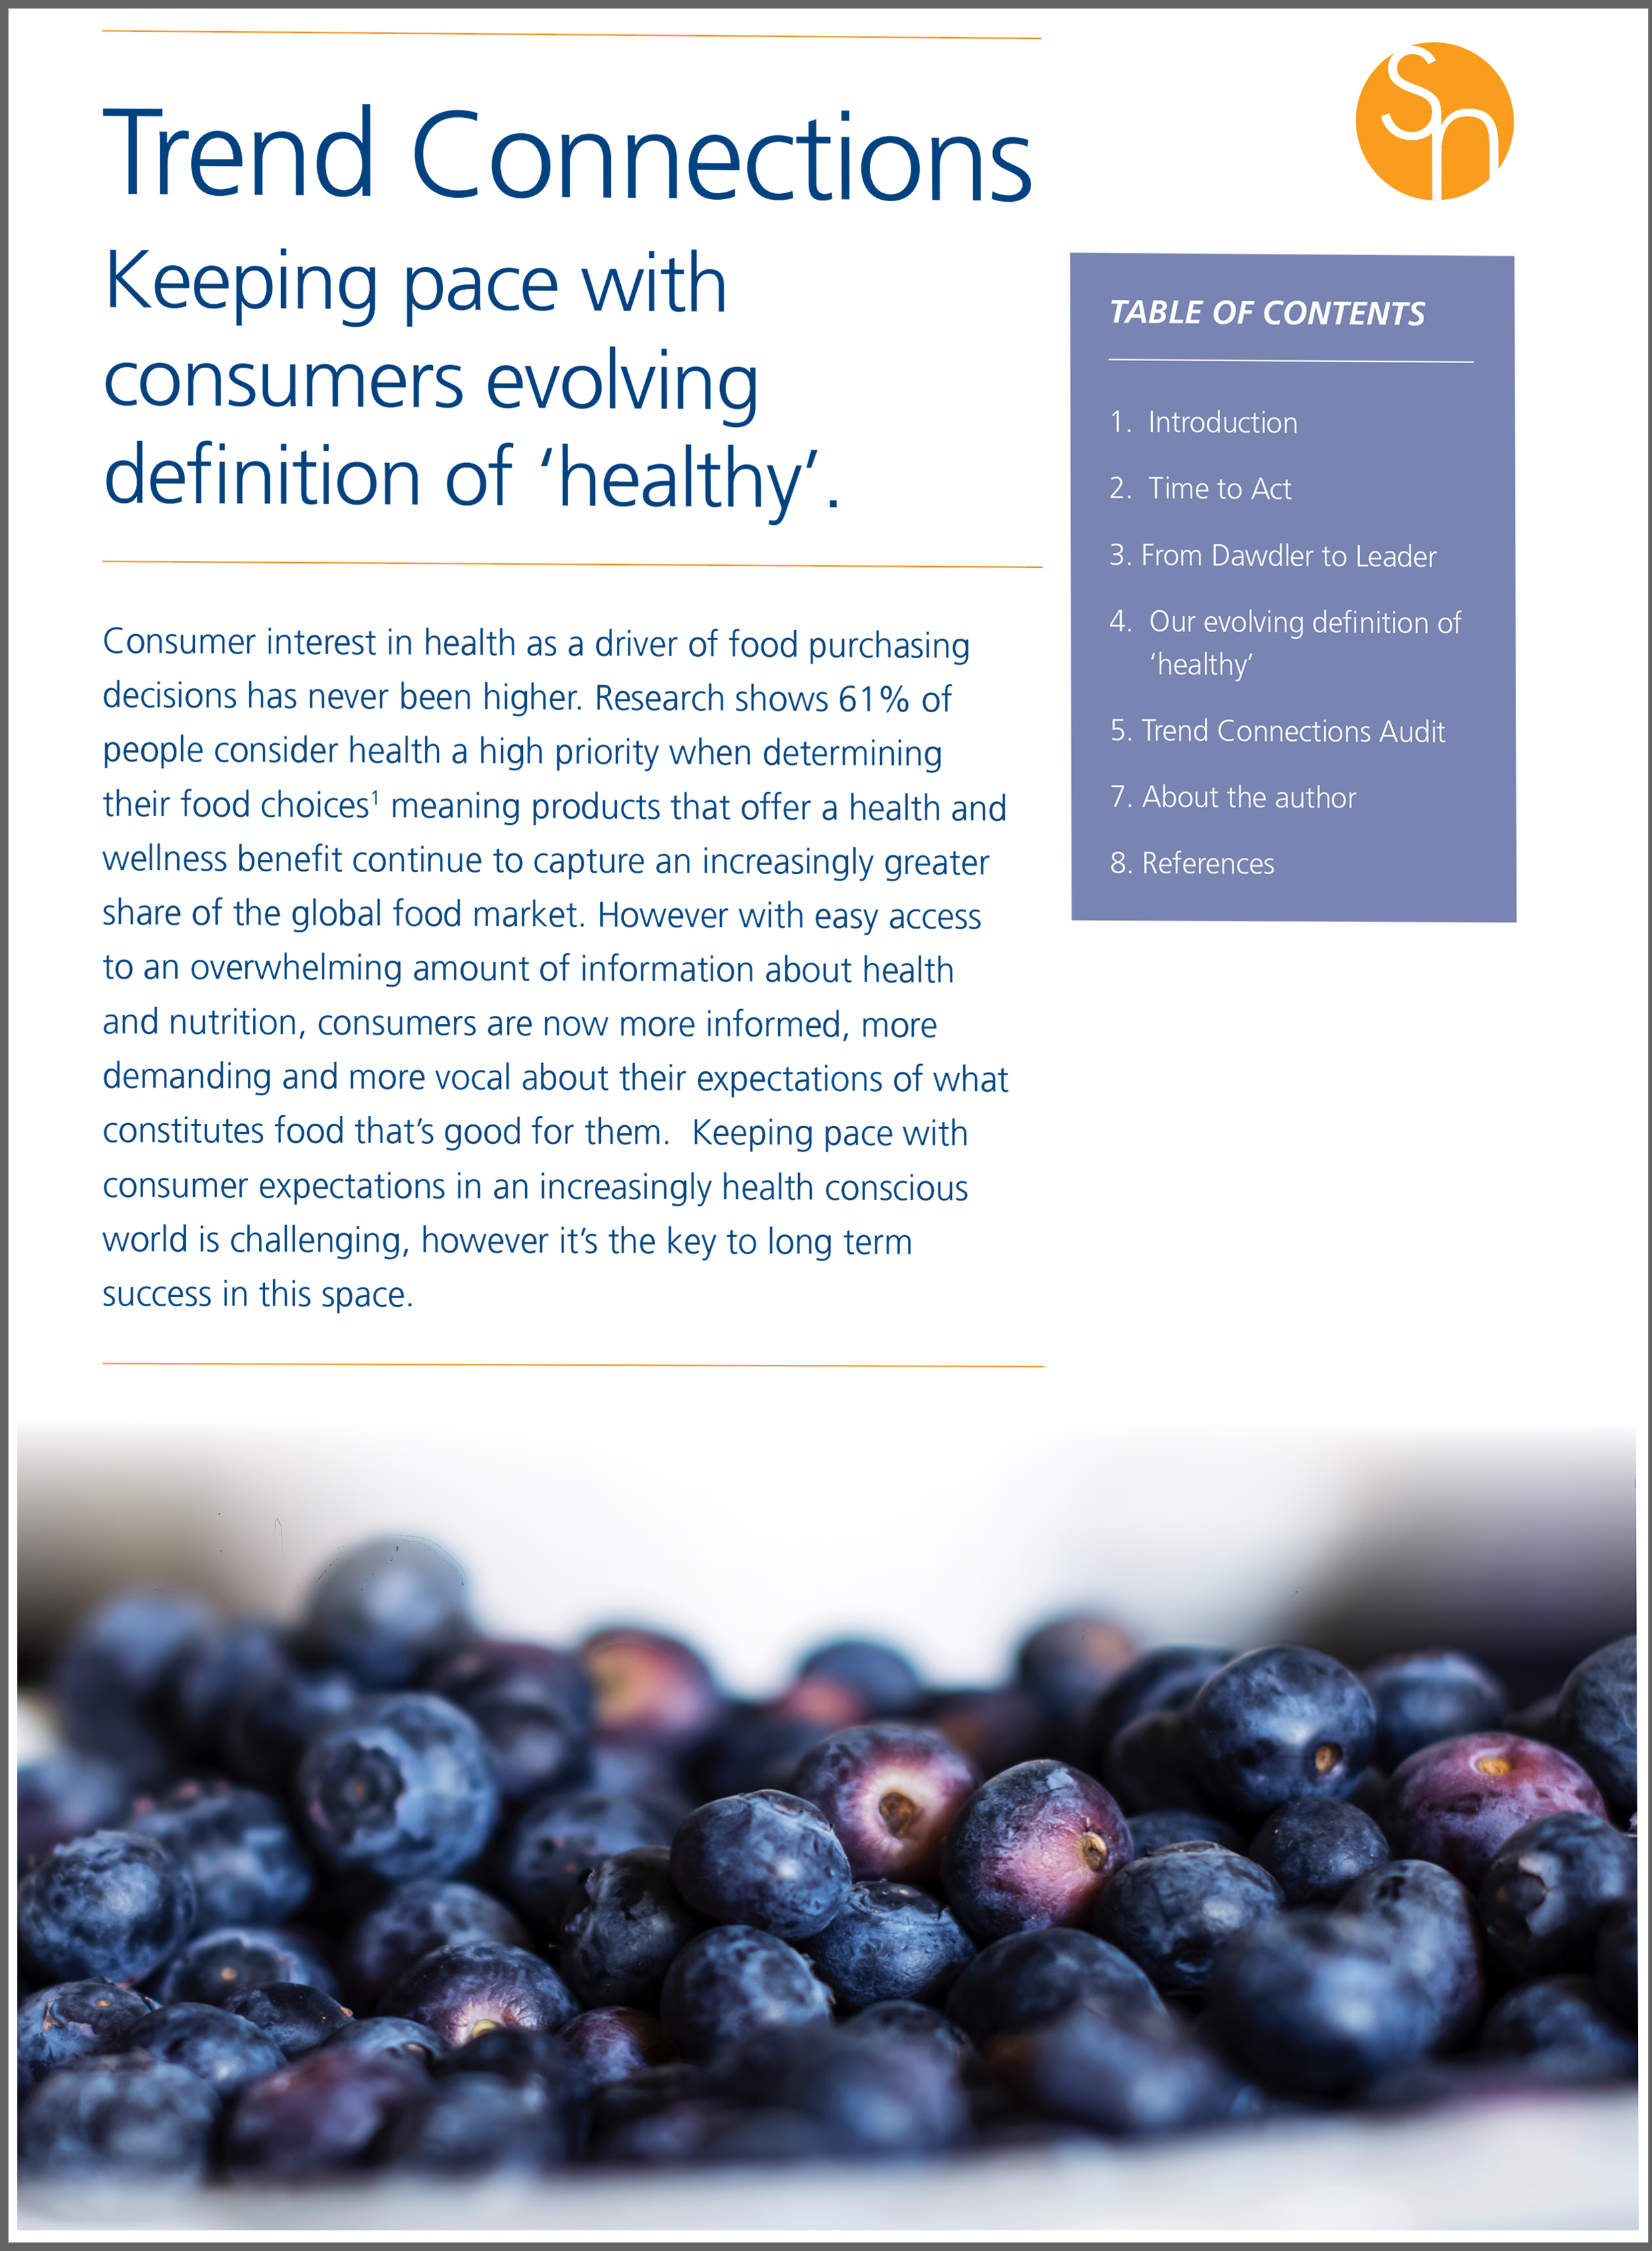 Trend Connections - Keeping Pace with Consumers Evolving Definition of Healthy-1.jpg